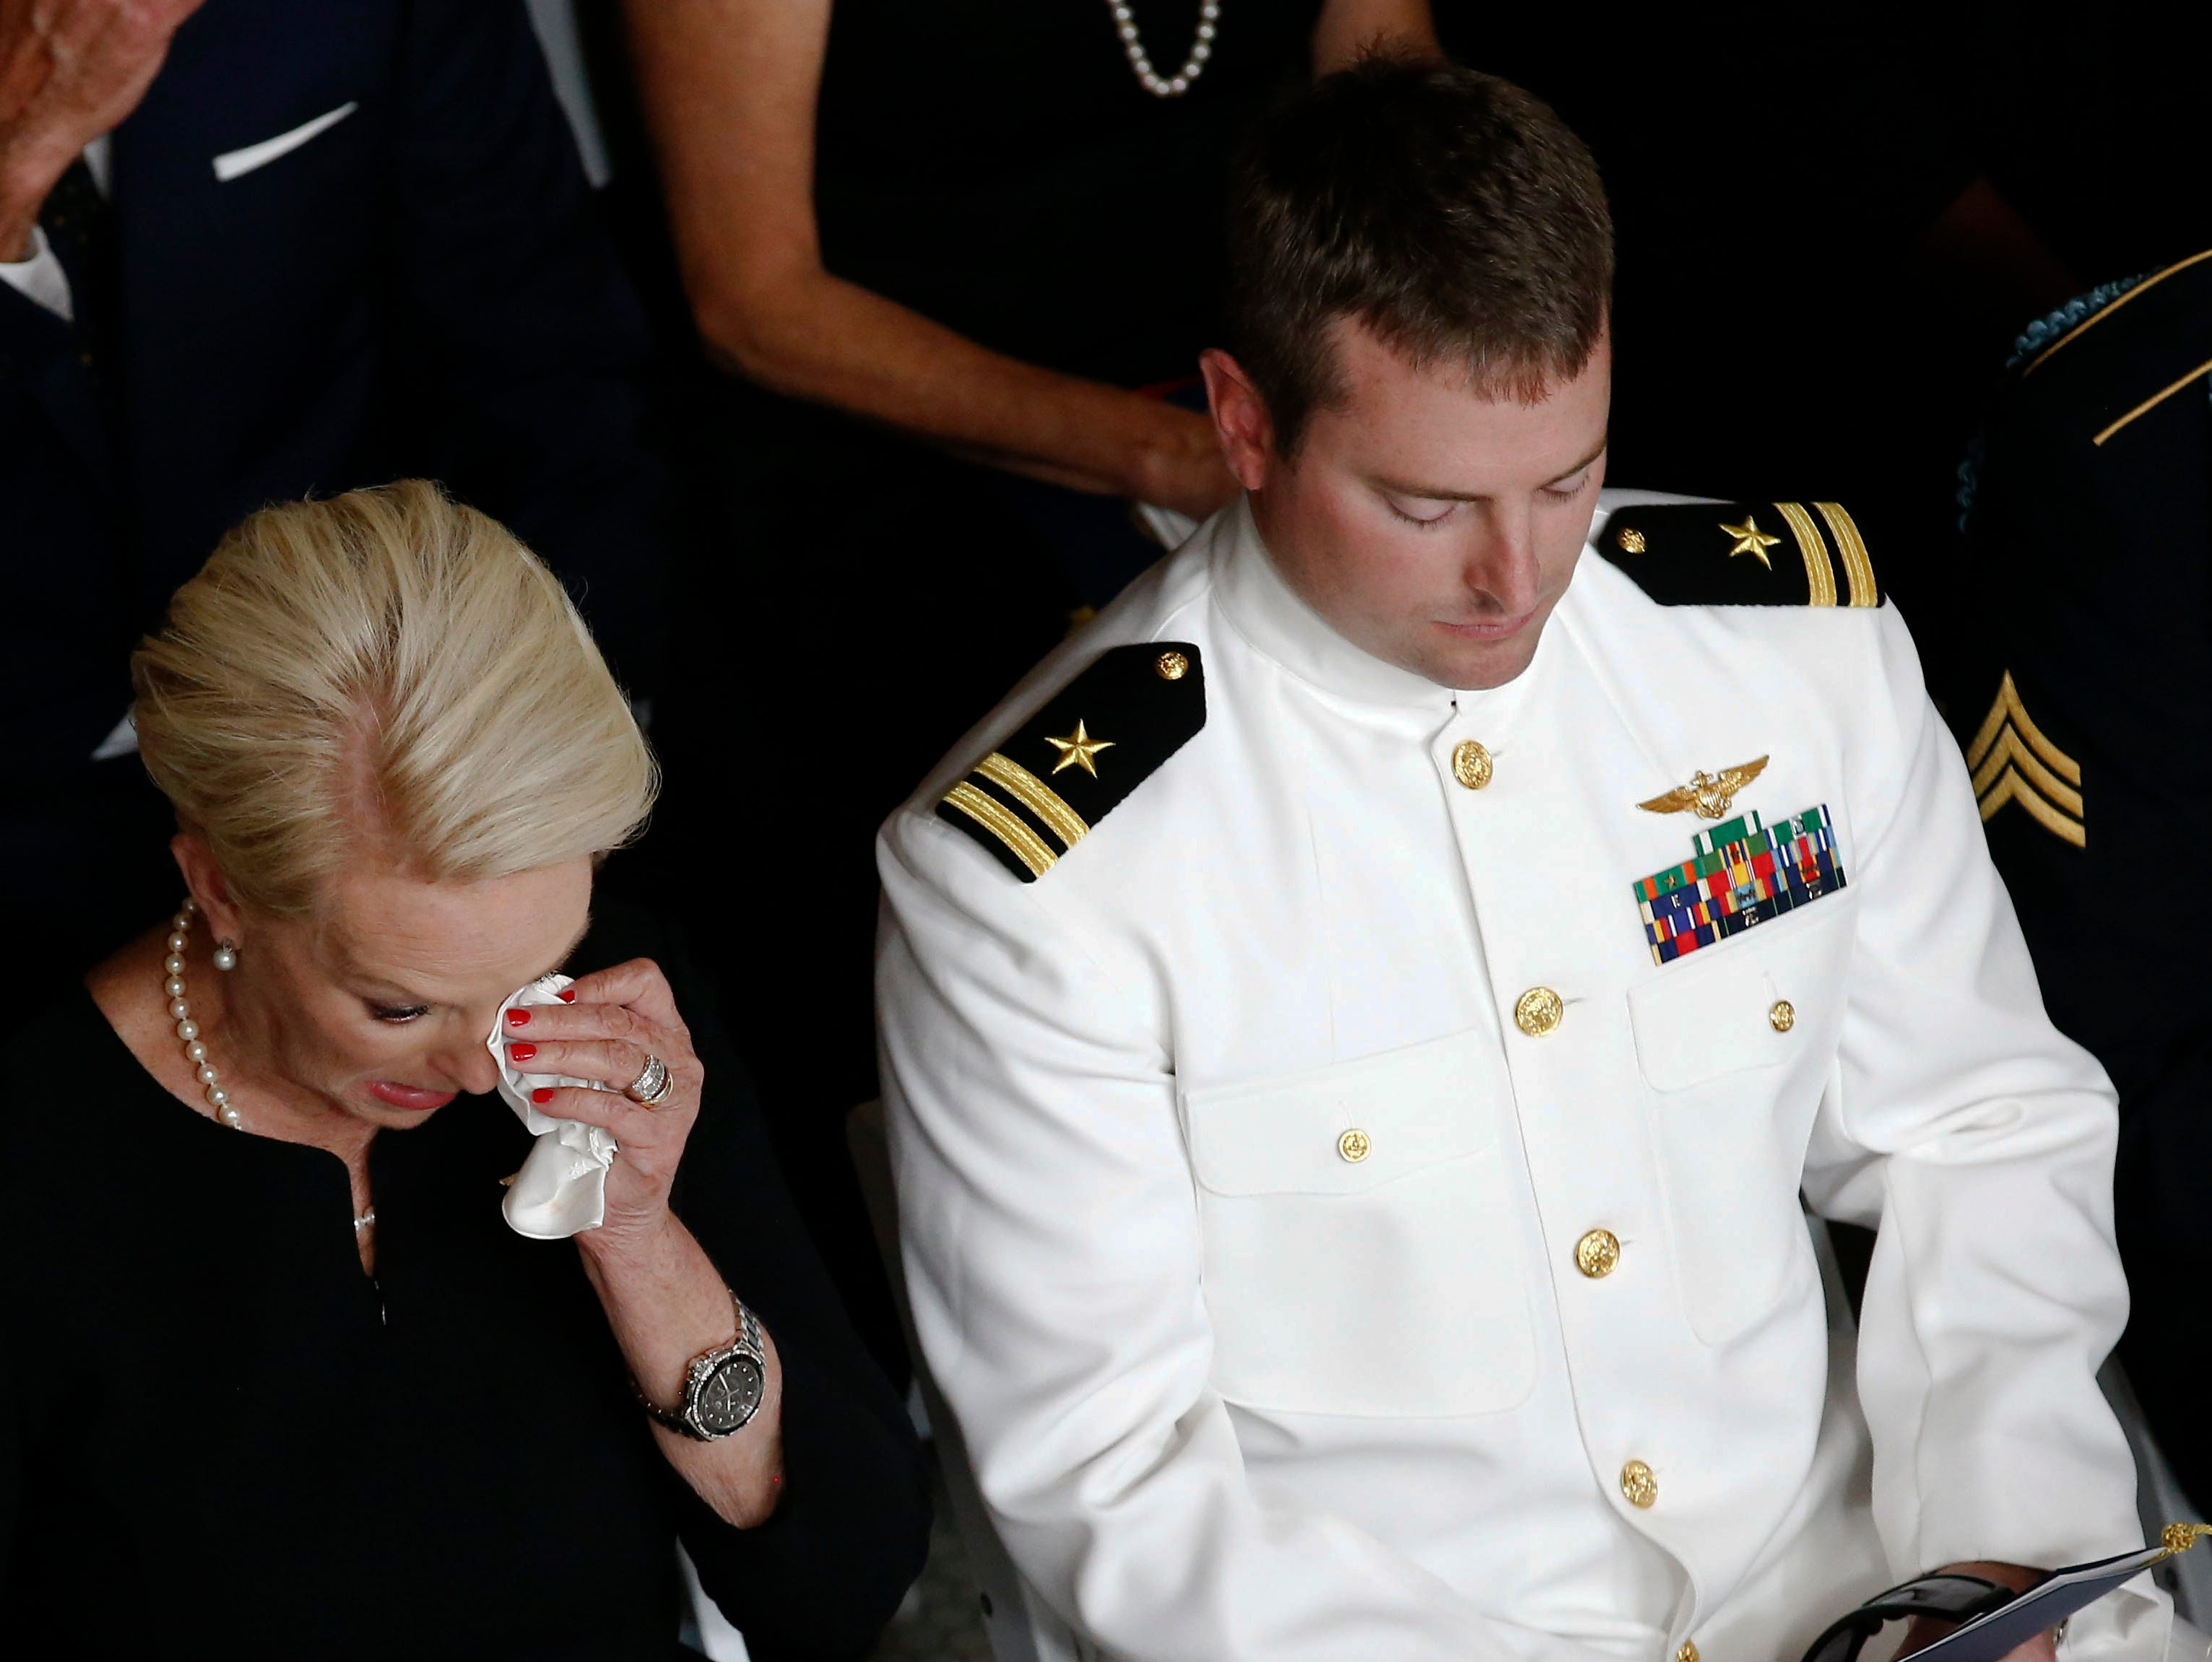 Cindy McCain, wife of Sen. John McCain, R-Ariz., wipes a tear away next to her son Jack during a memorial service at the Arizona Capitol on Aug. 29, 2018, in Phoenix.